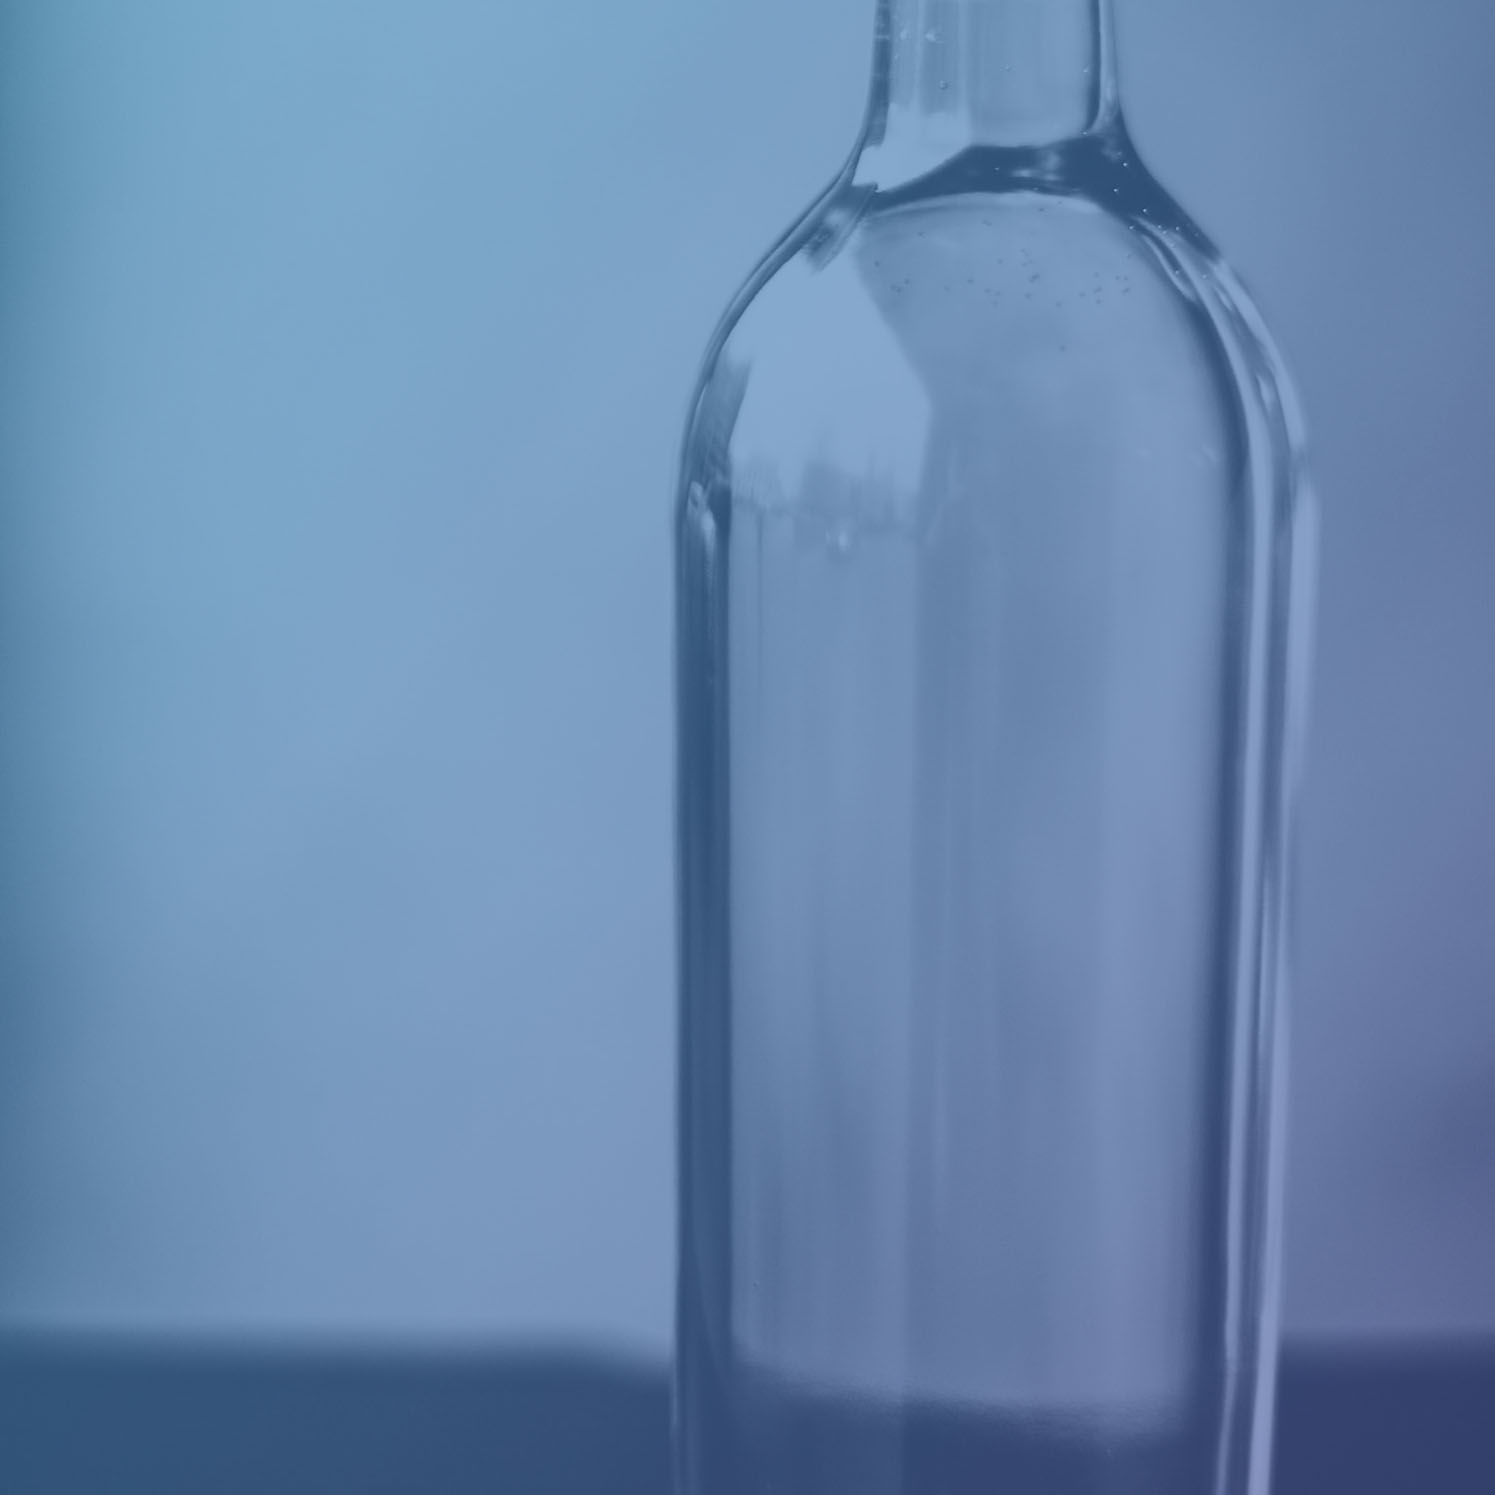 A clear glass bottle with a long neck containing a clear liquid